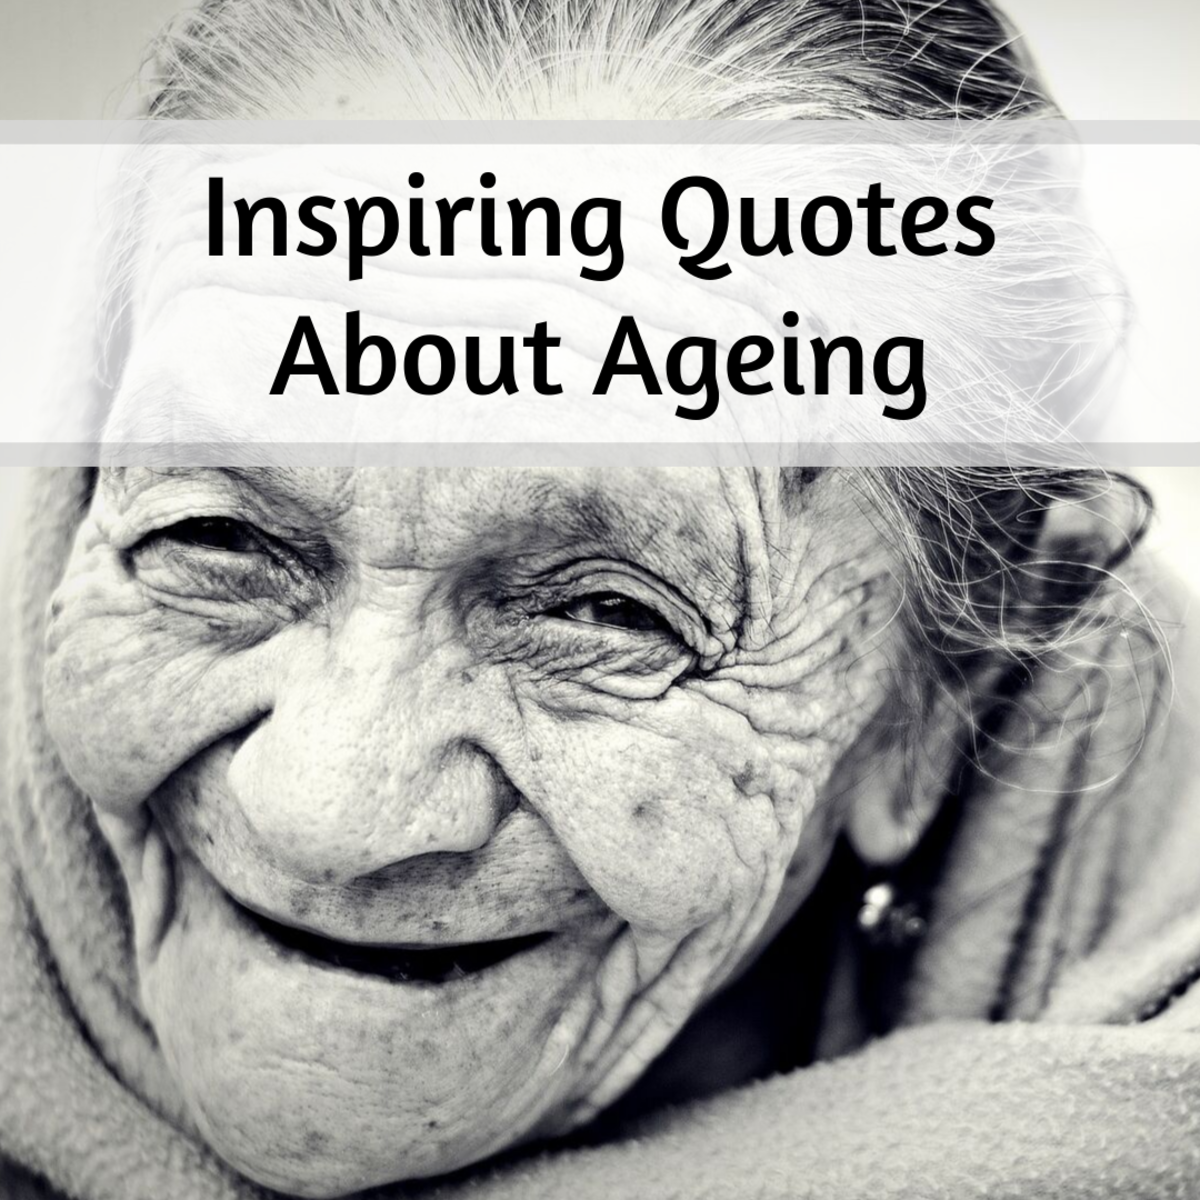 Read some positive and inspirational quotes related to old age and ageing.